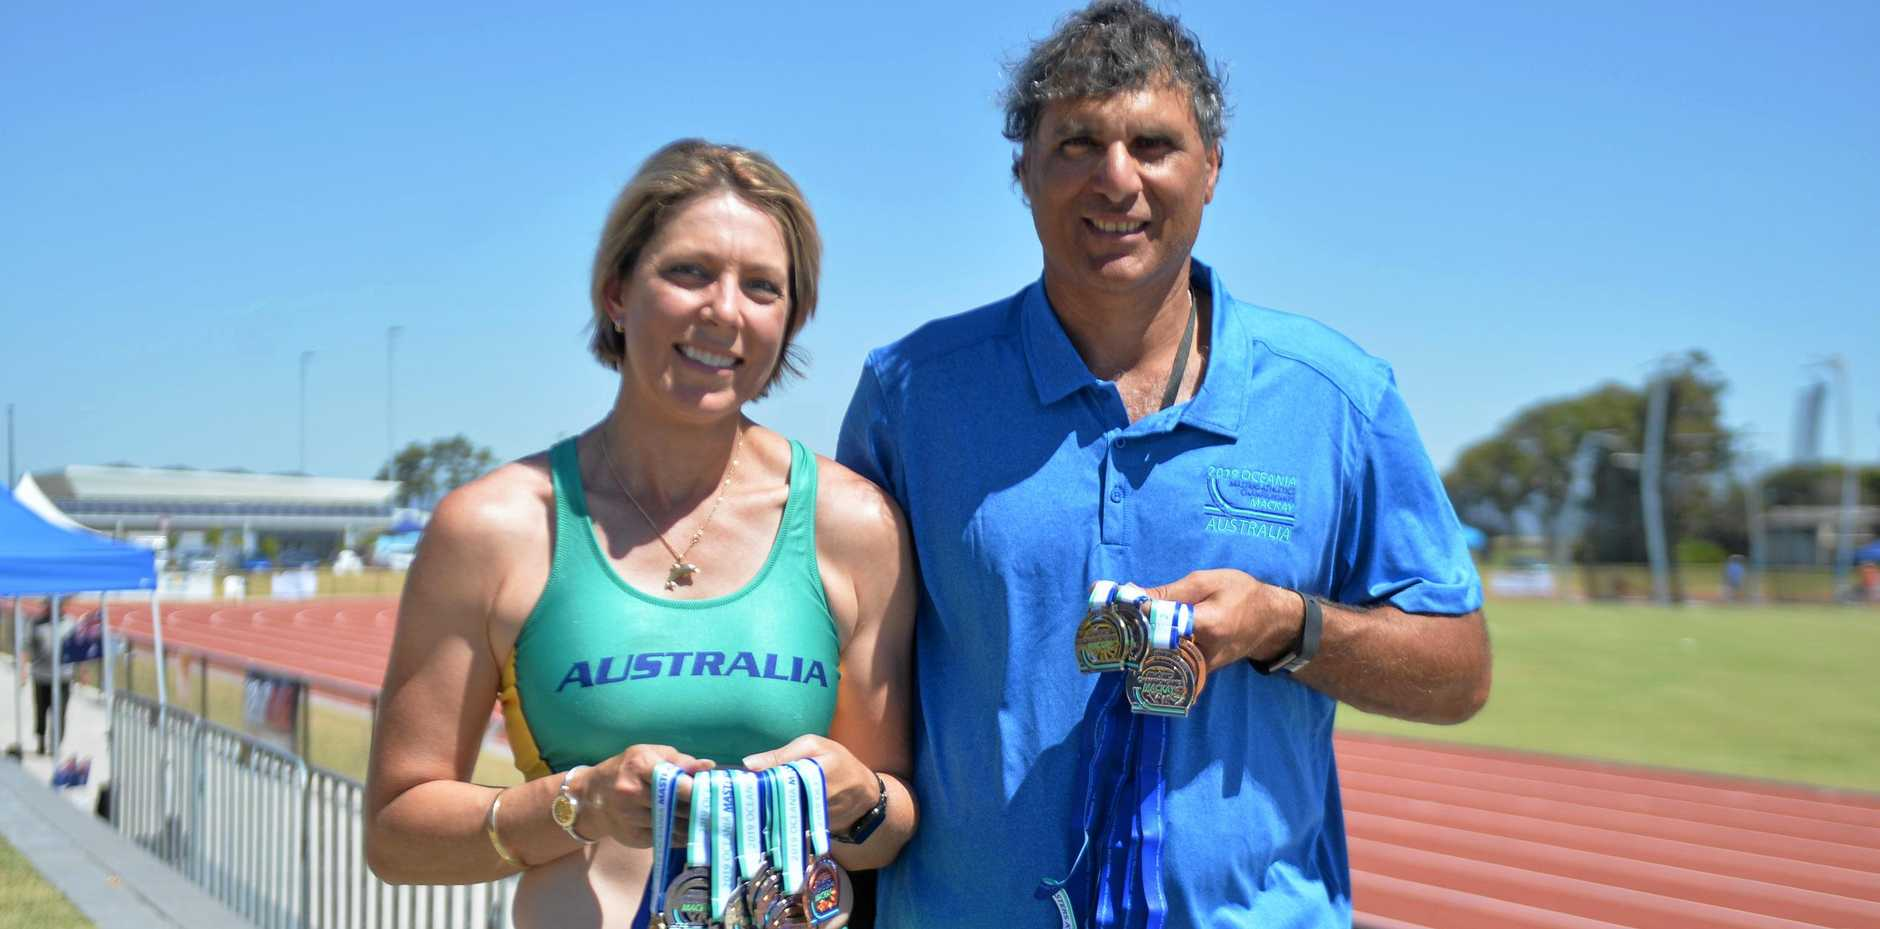 MEDAL HAUL: Mackay competitors in the 2019 Oceania Masters Athletics Championships Les-Lee Reid and Kevin Galea with their medals.